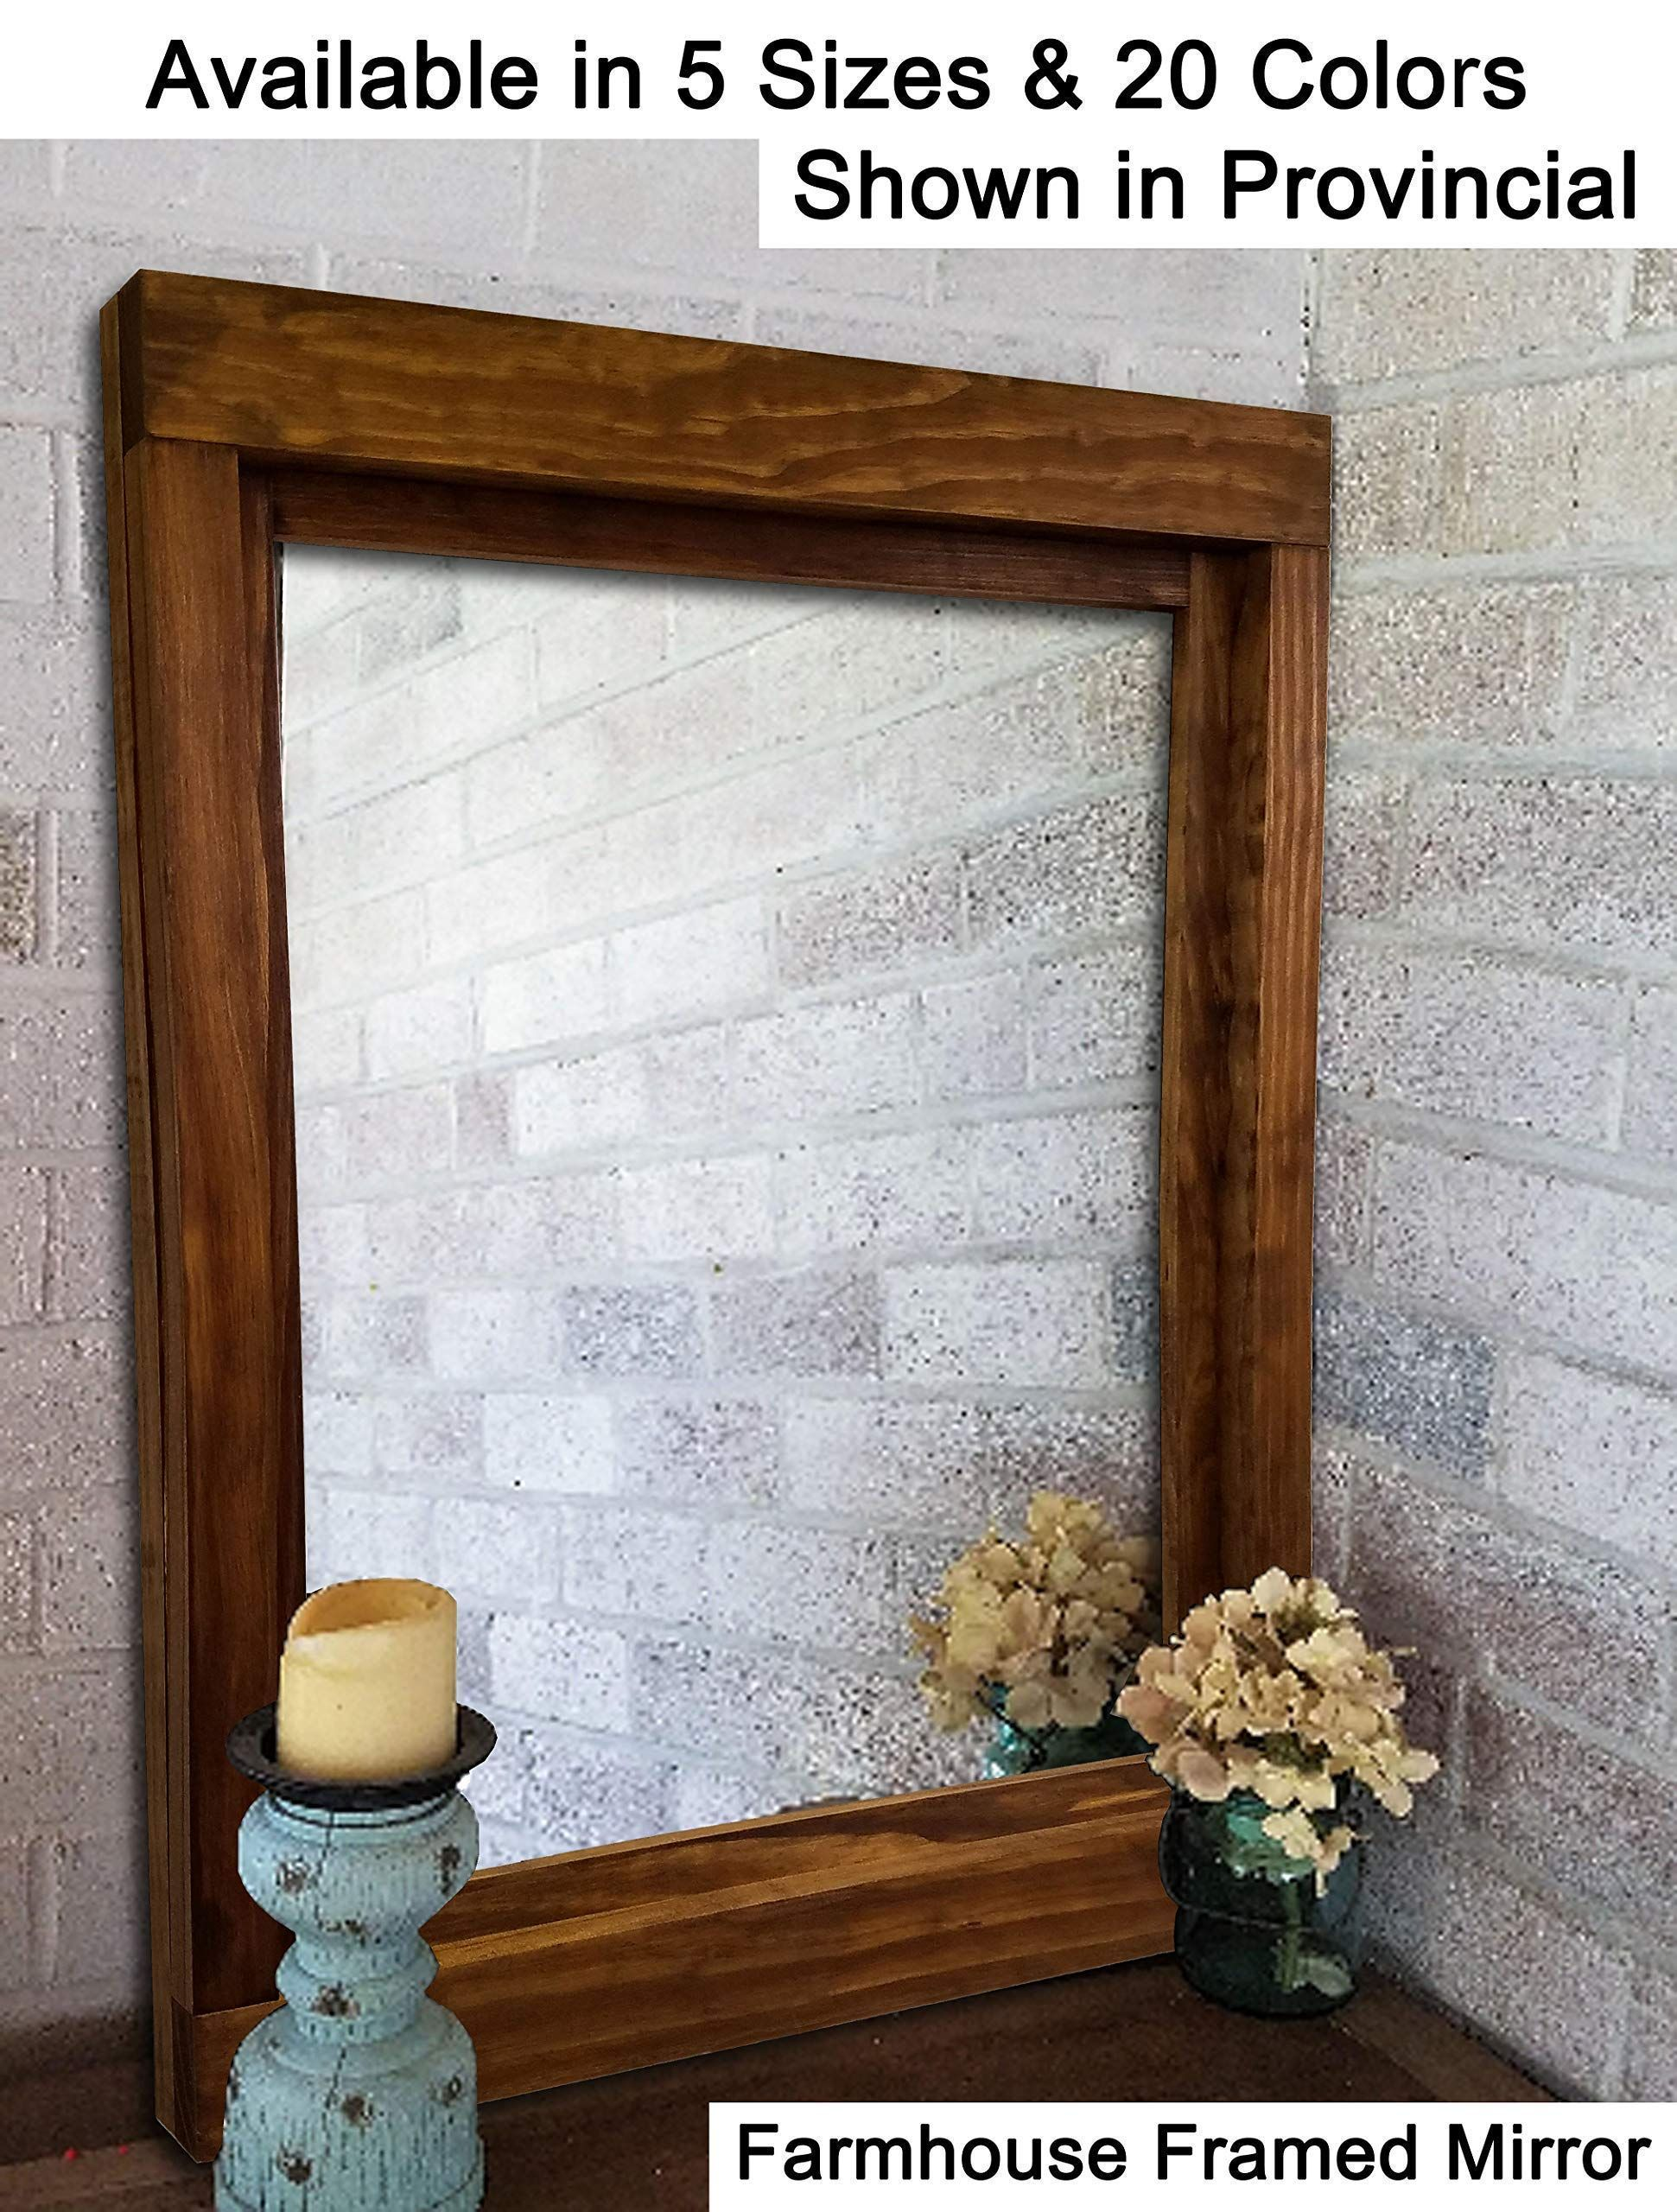 Farmhouse large framed mirror available in 6 sizes and 20